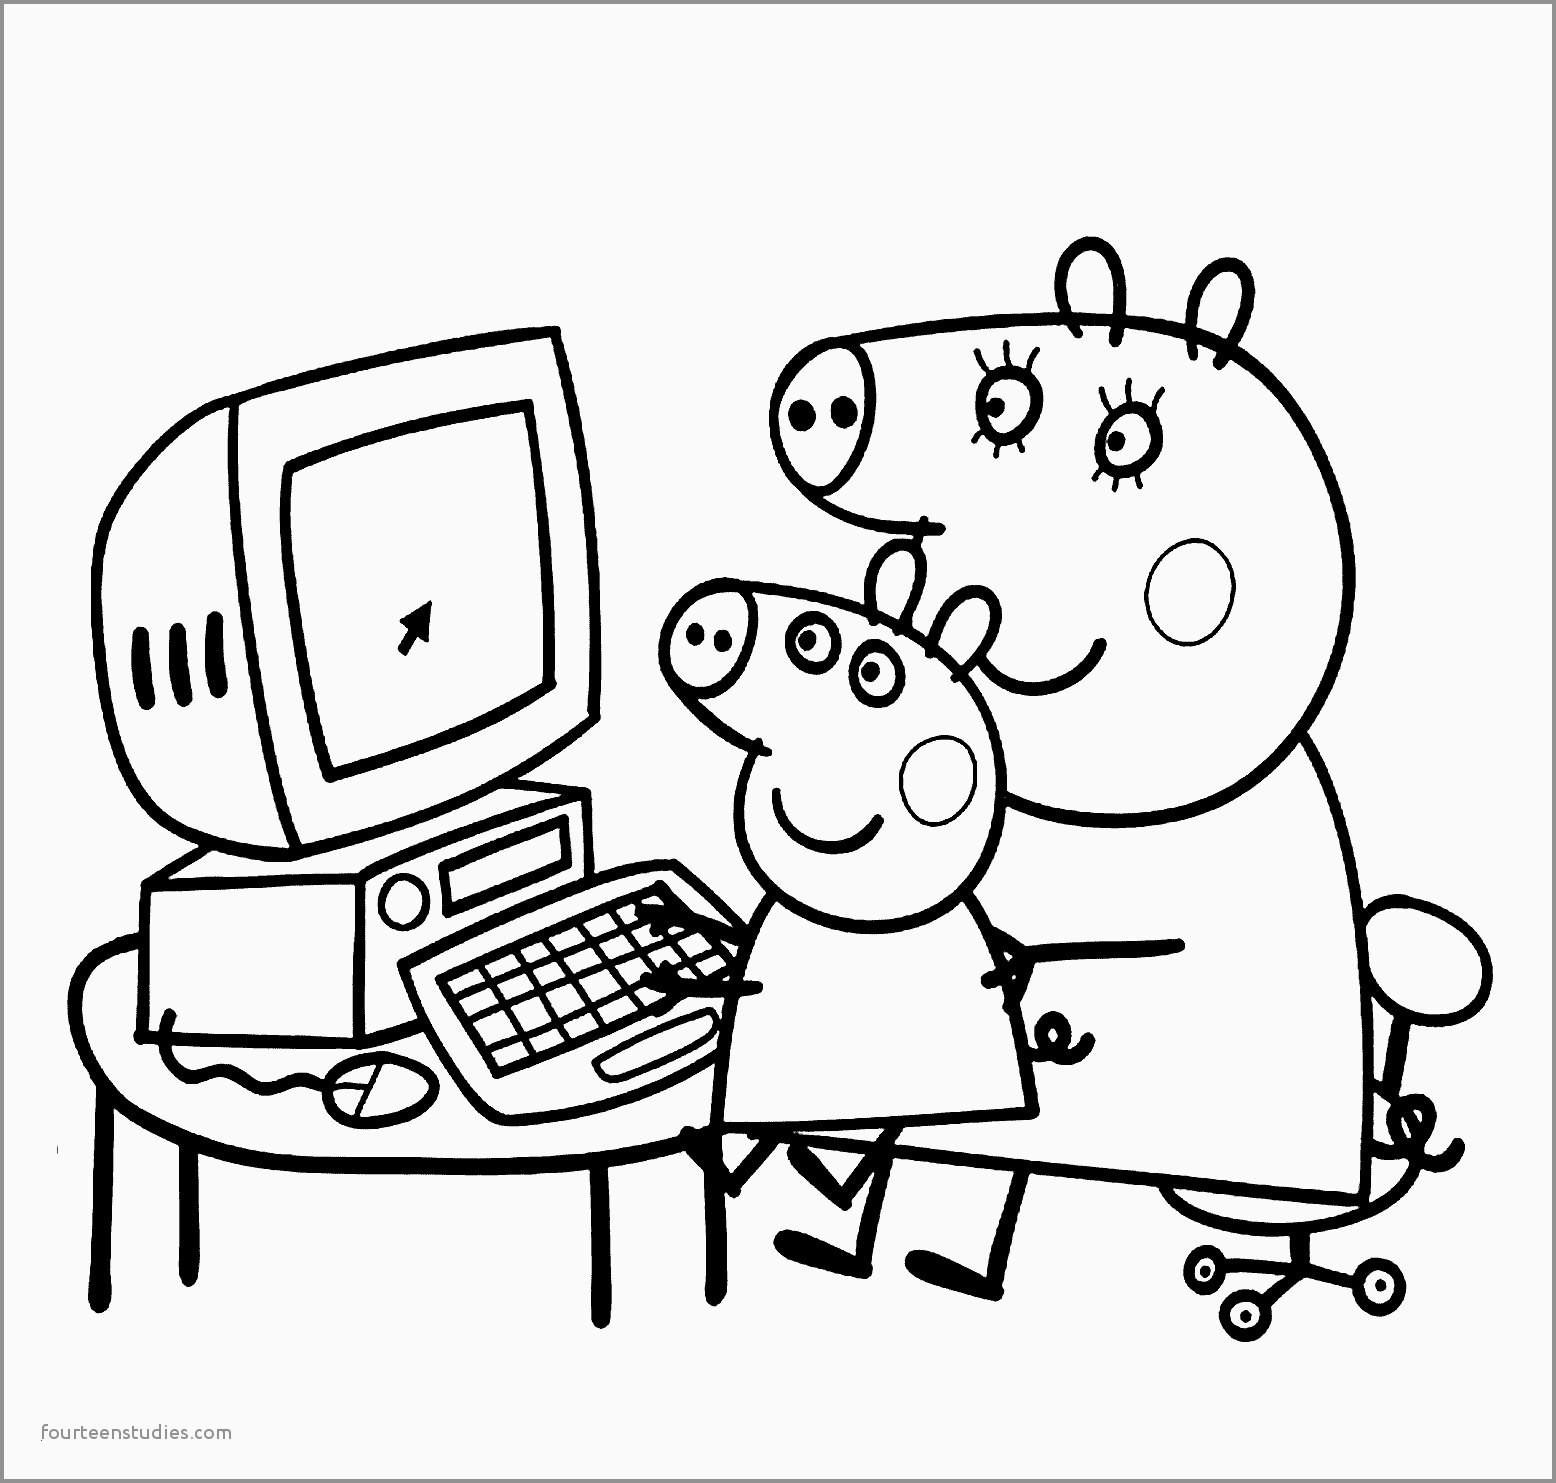 Cute Pig Coloring Pages  Download 5j - To print for your project